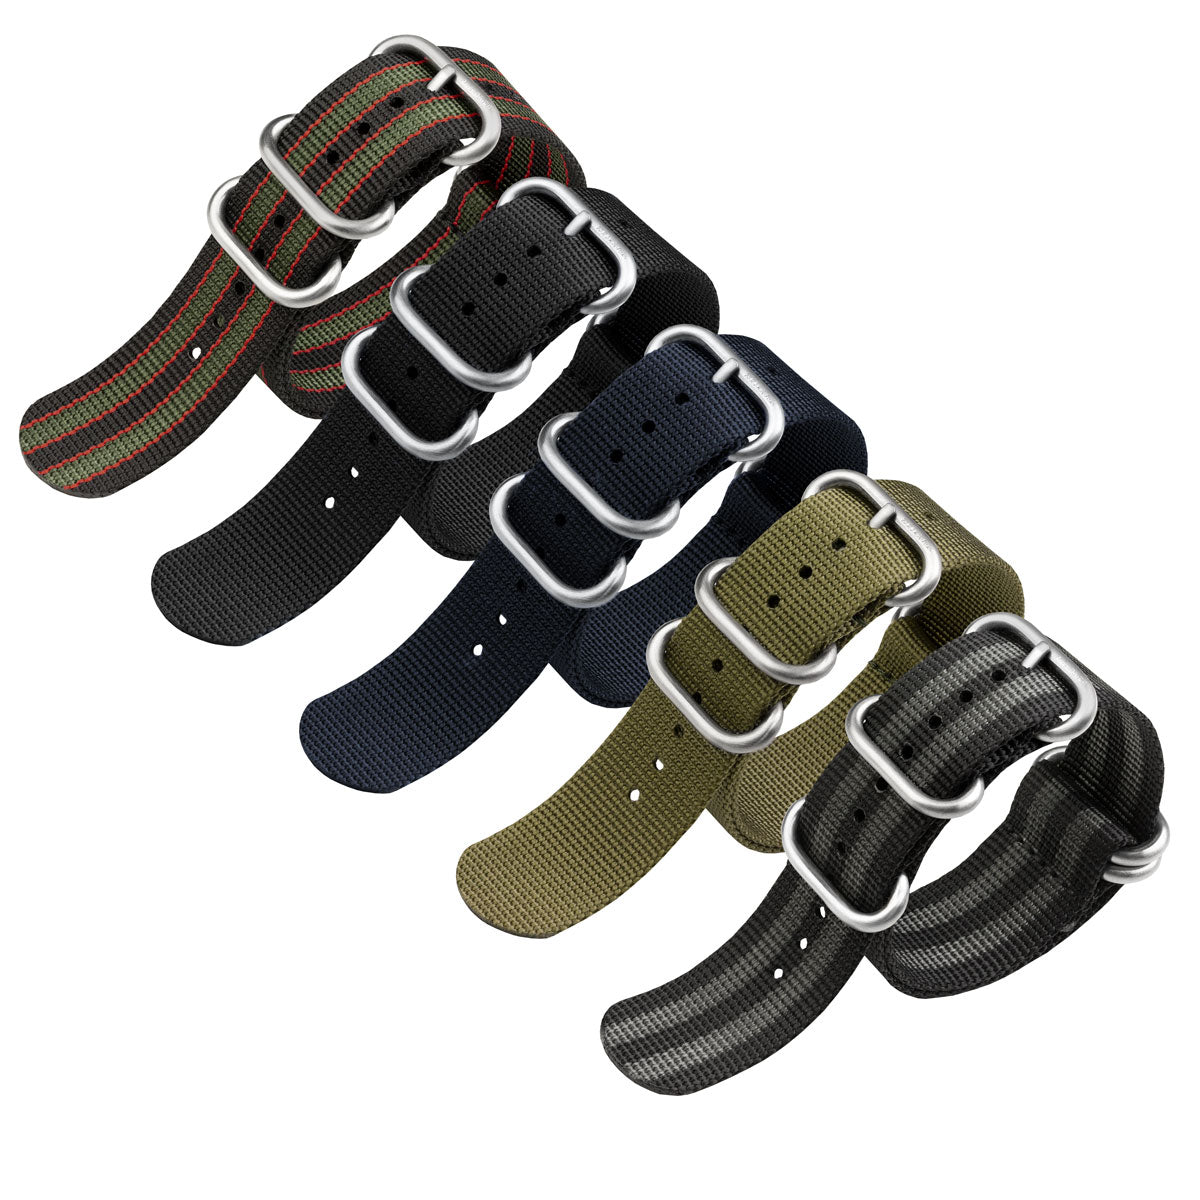 ZULUDIVER Heavy Duty ZULU Watch Strap